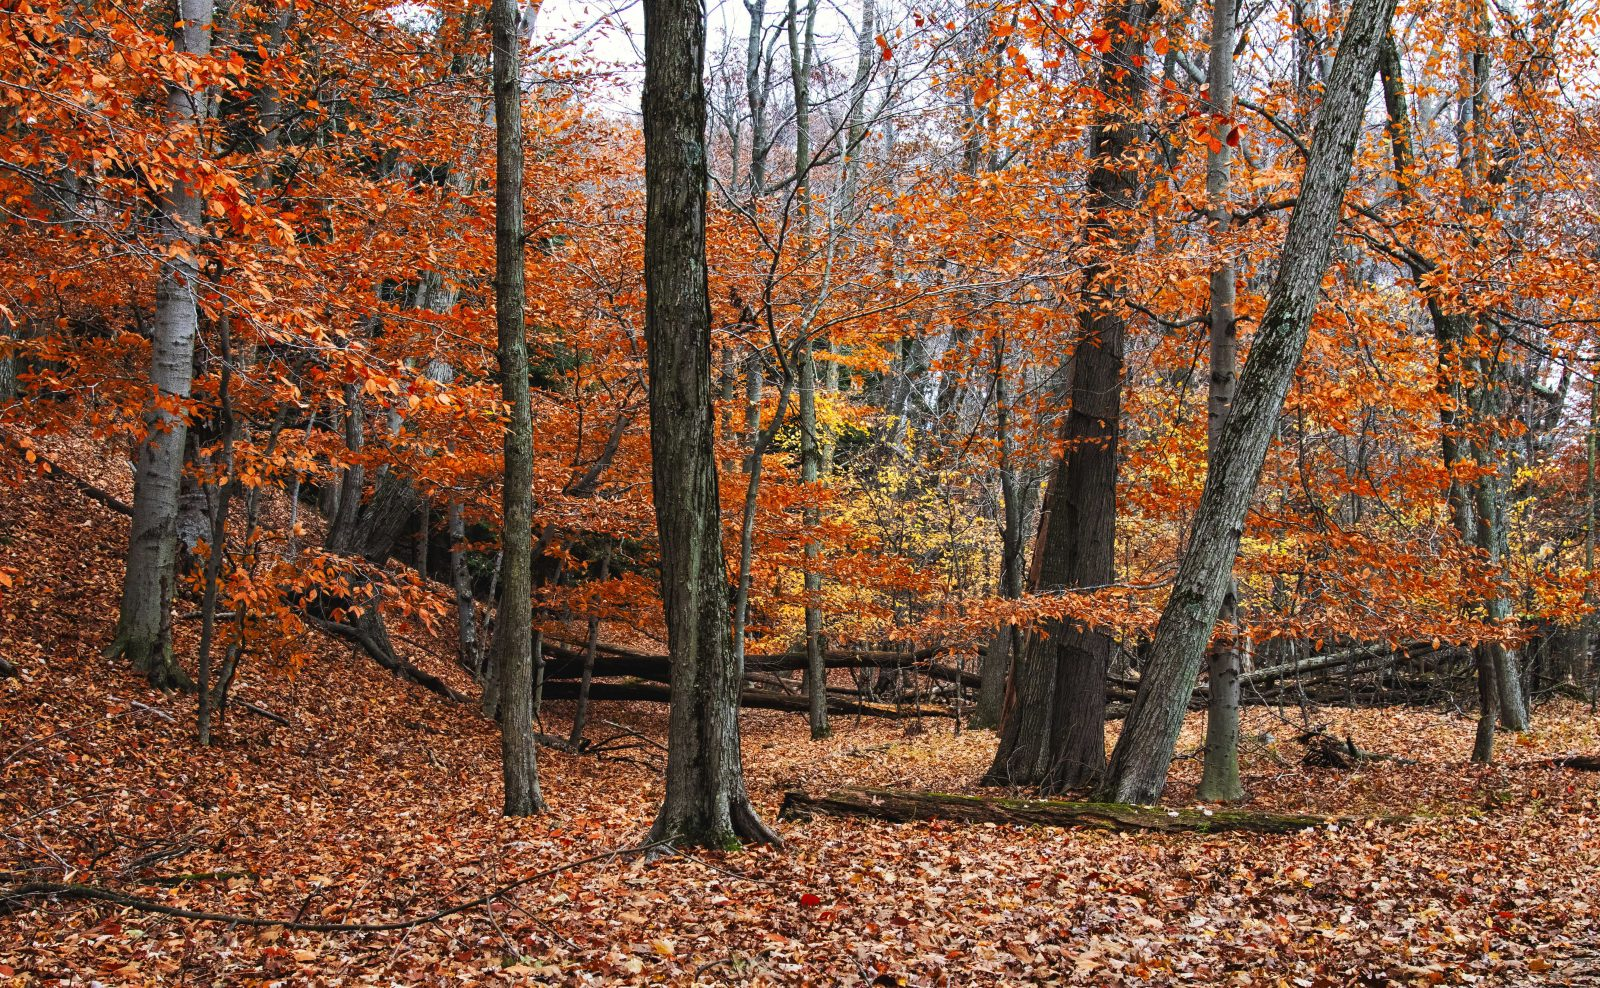 Late Autumn Forest View